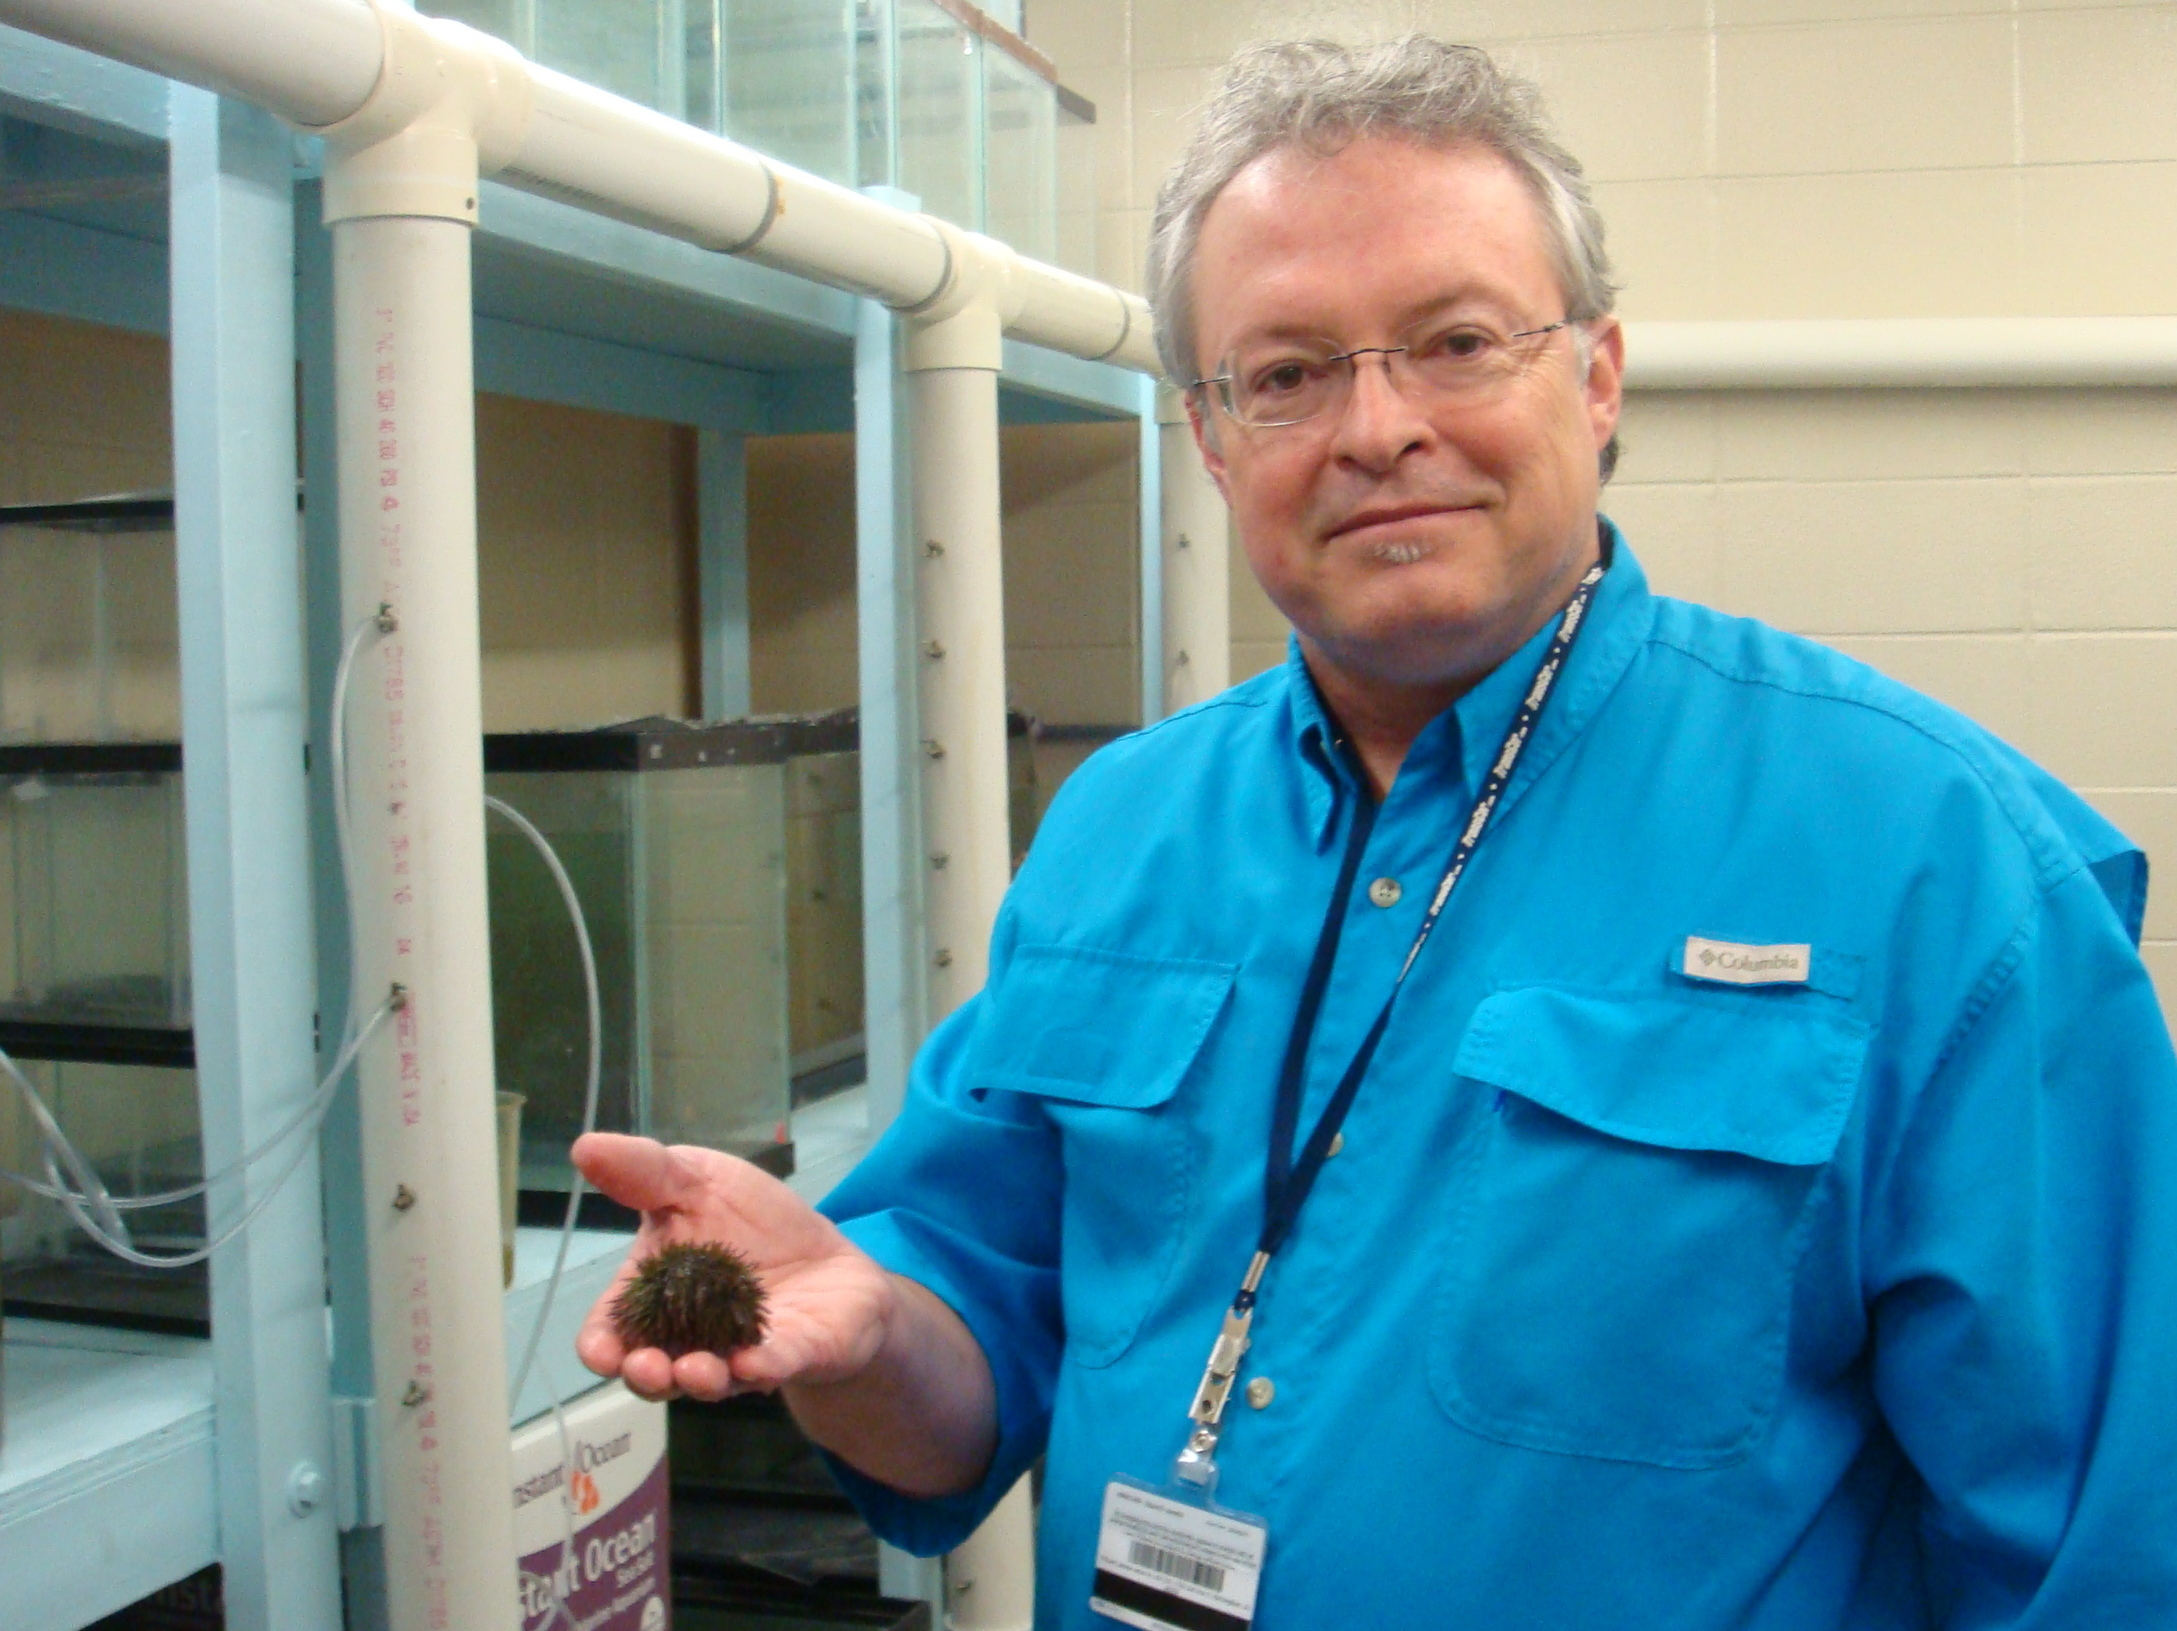 Stephen Watts, a biology professor at the University of Alabama at Birmingham, has been growing sea urchins in a lab for nearly two decades as a way to address overharvesting.